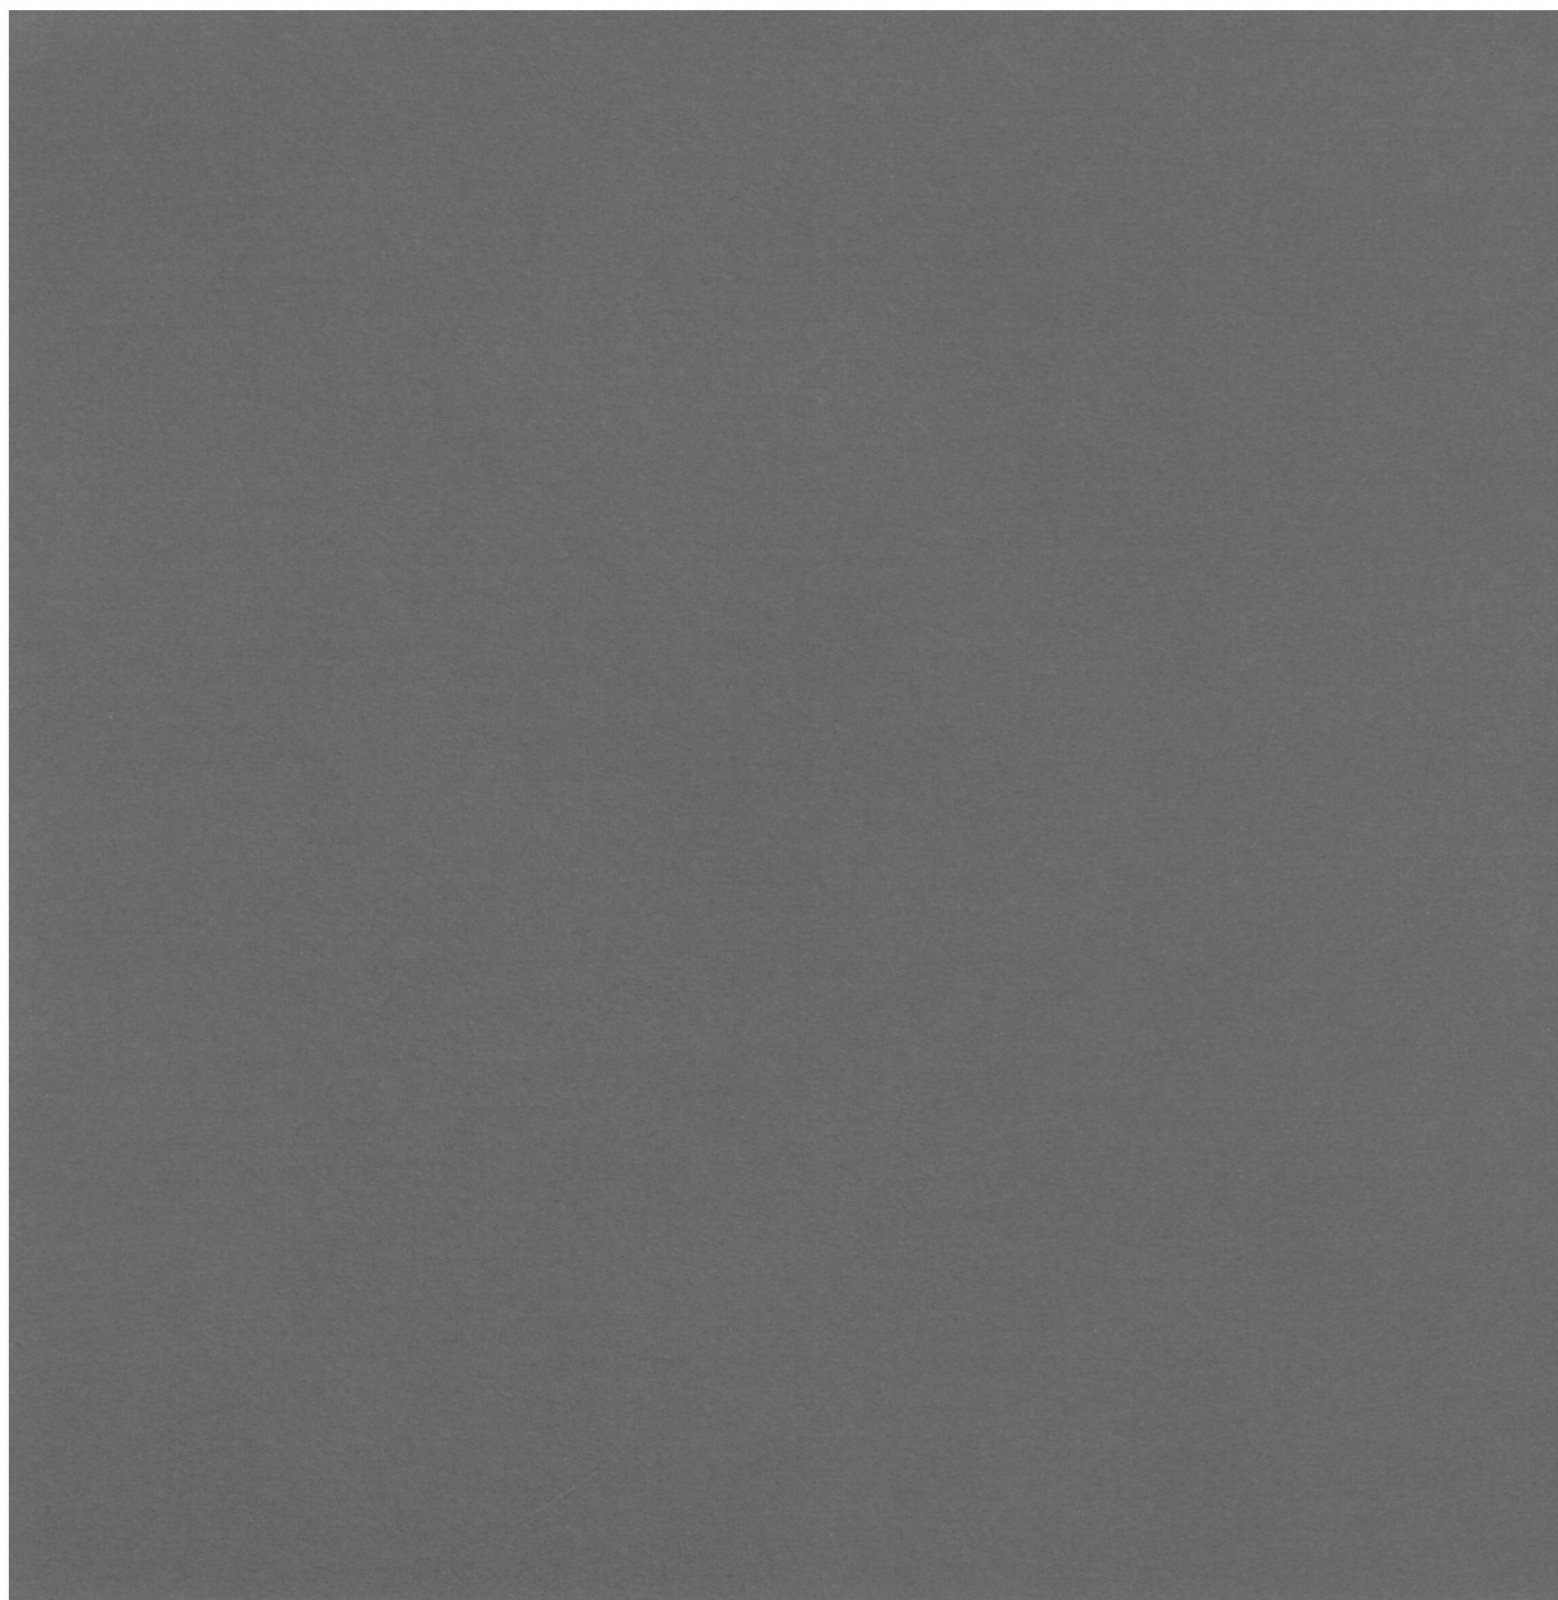 AC Cardstock 12X12 doux/lisse Charbon 80lbs - Smooth Cardstock, Charcoal Item # 71771